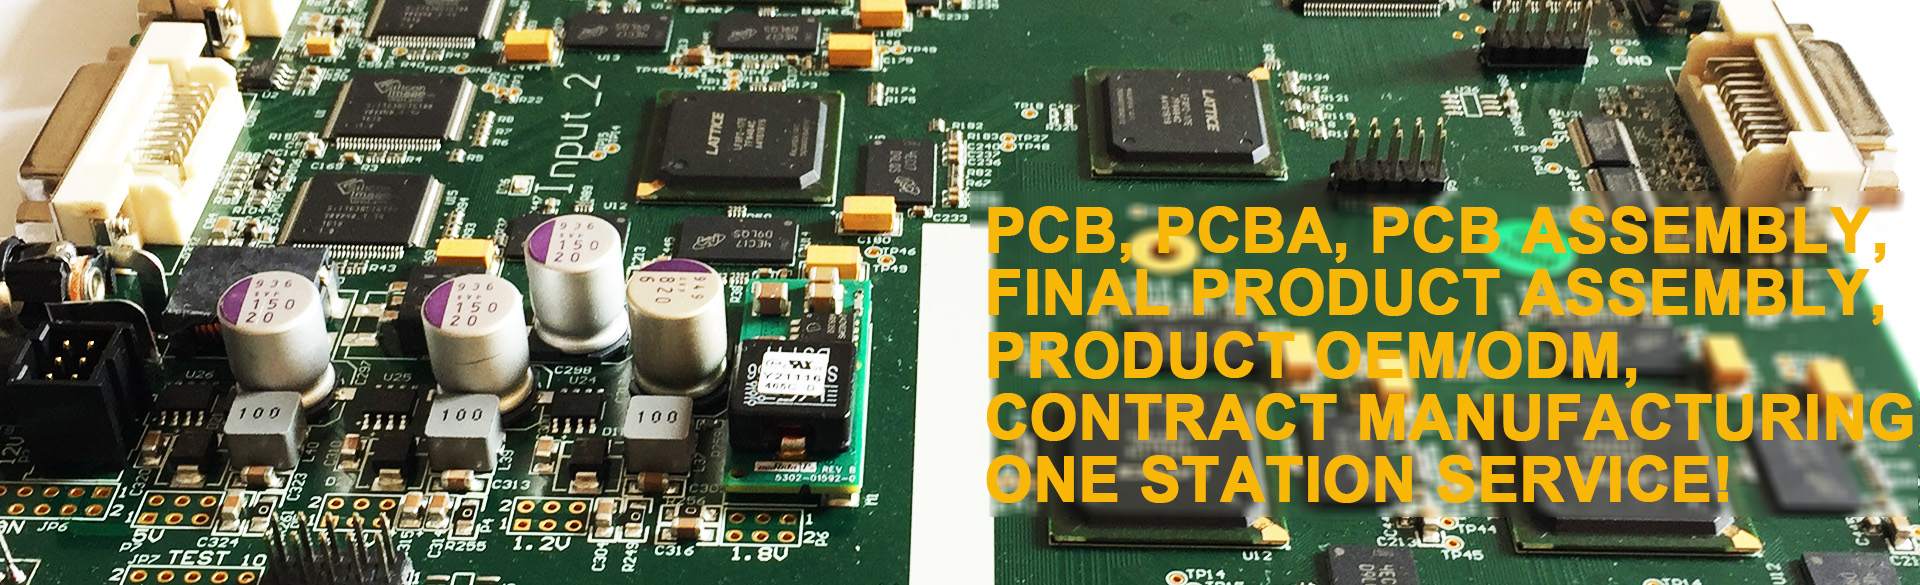 pcb circuit board assembly in china,PCB board,electronic circuit board